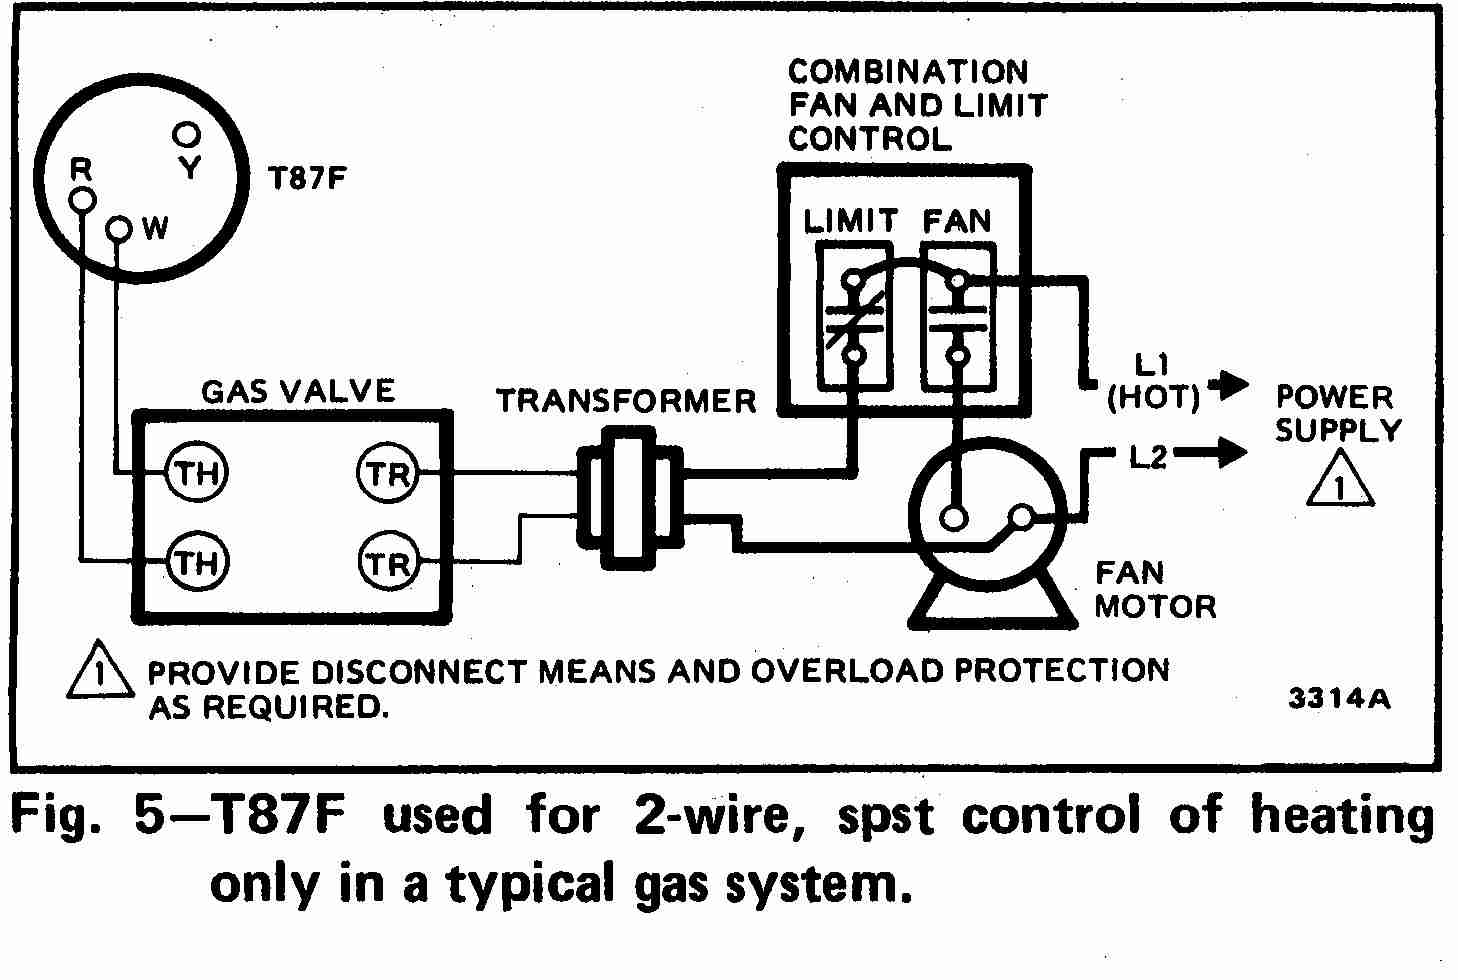 TT_T87F_0002_2Wg_DJF room thermostat wiring diagrams for hvac systems imit boiler thermostat wiring diagram at sewacar.co